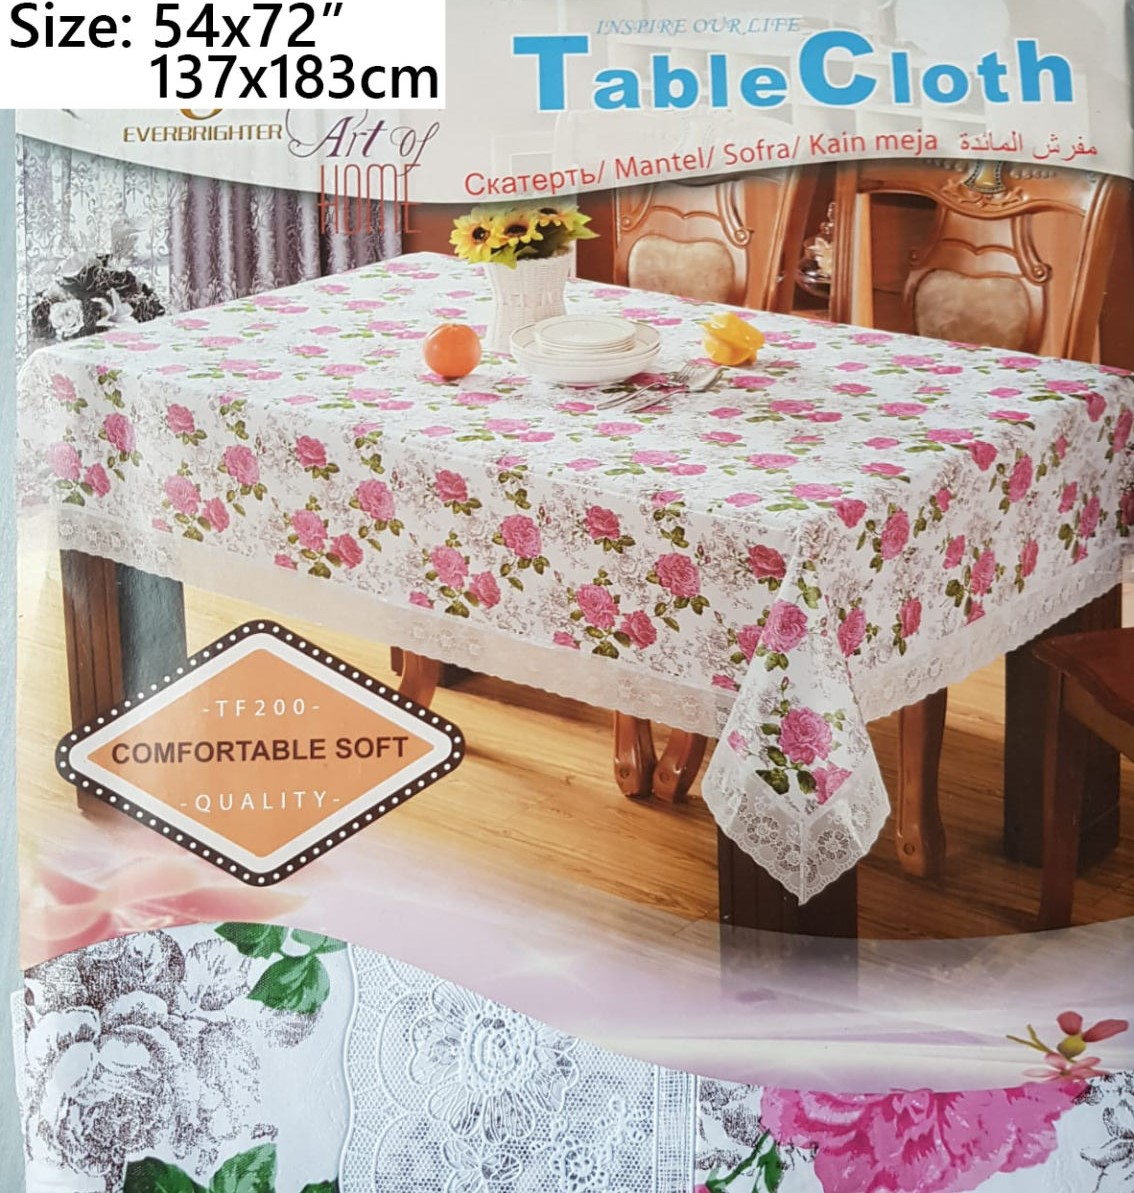 Elegant Table Cover with beautiful White Lace Border Non woven with felt like backing PVC Table cloth Protector in multiple size options